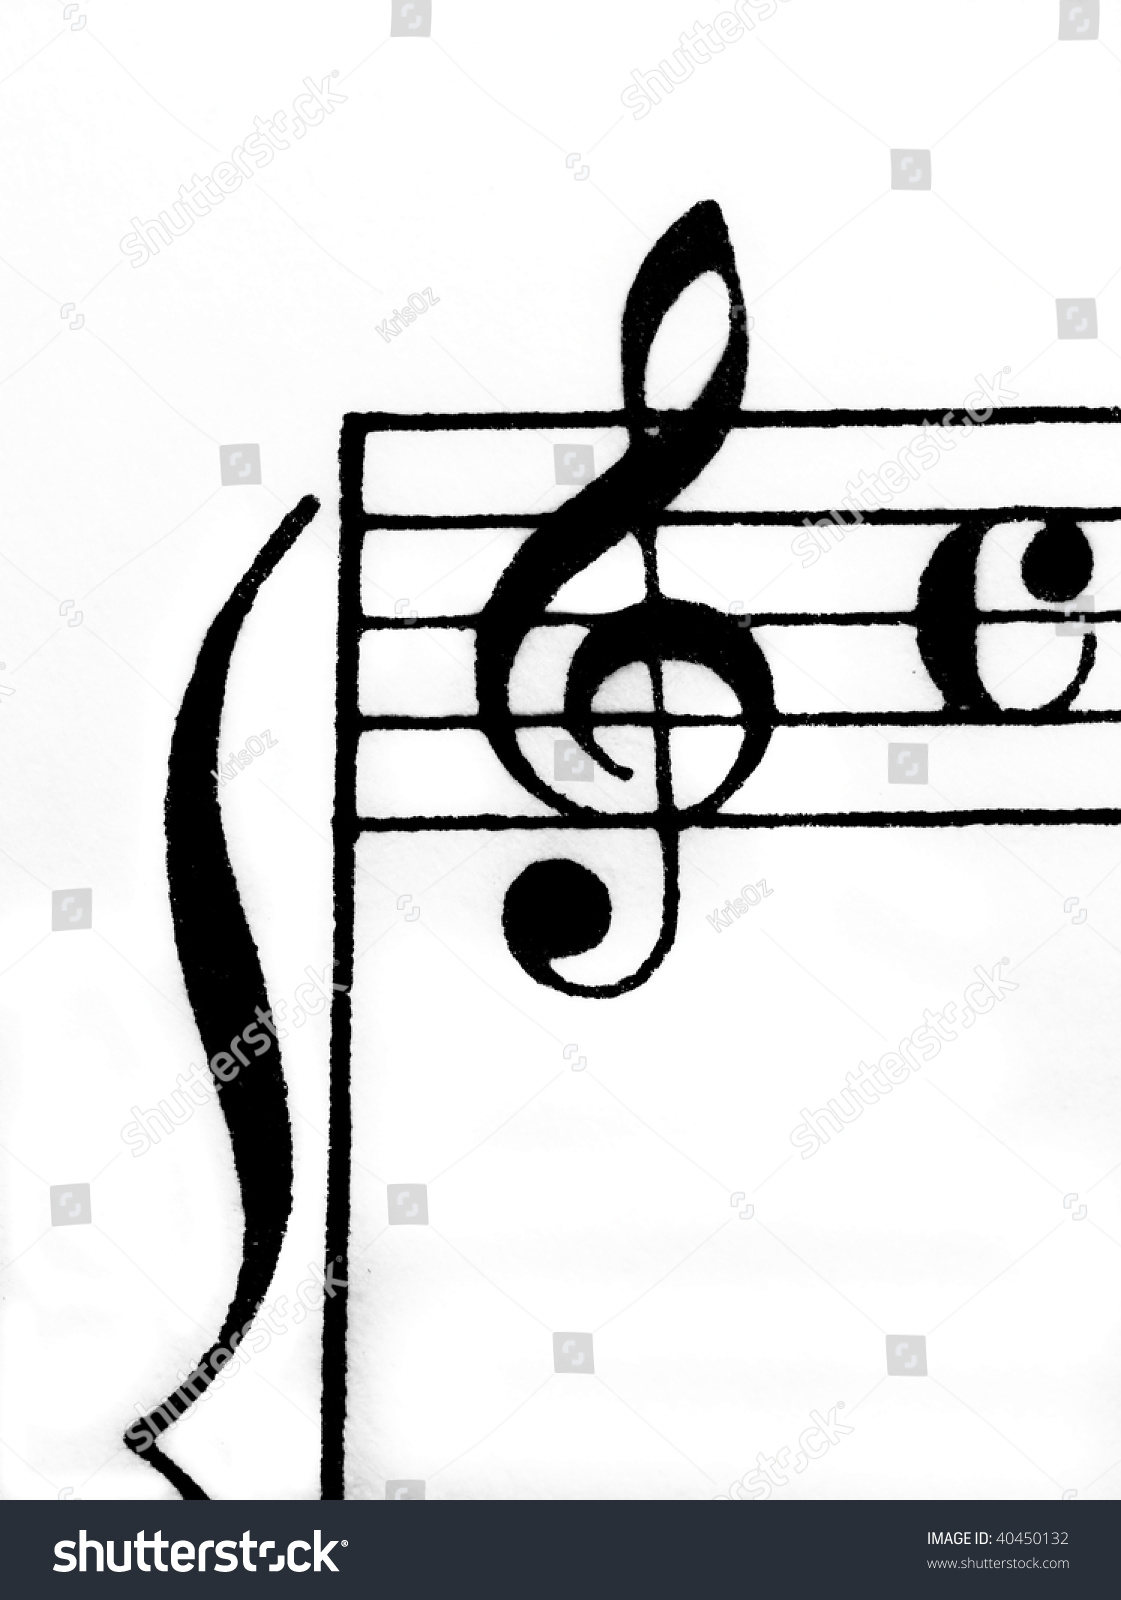 Treble clef on sheet music manuscript stock photo 40450132 treble clef on sheet music manuscript with common time signature and ledger lines biocorpaavc